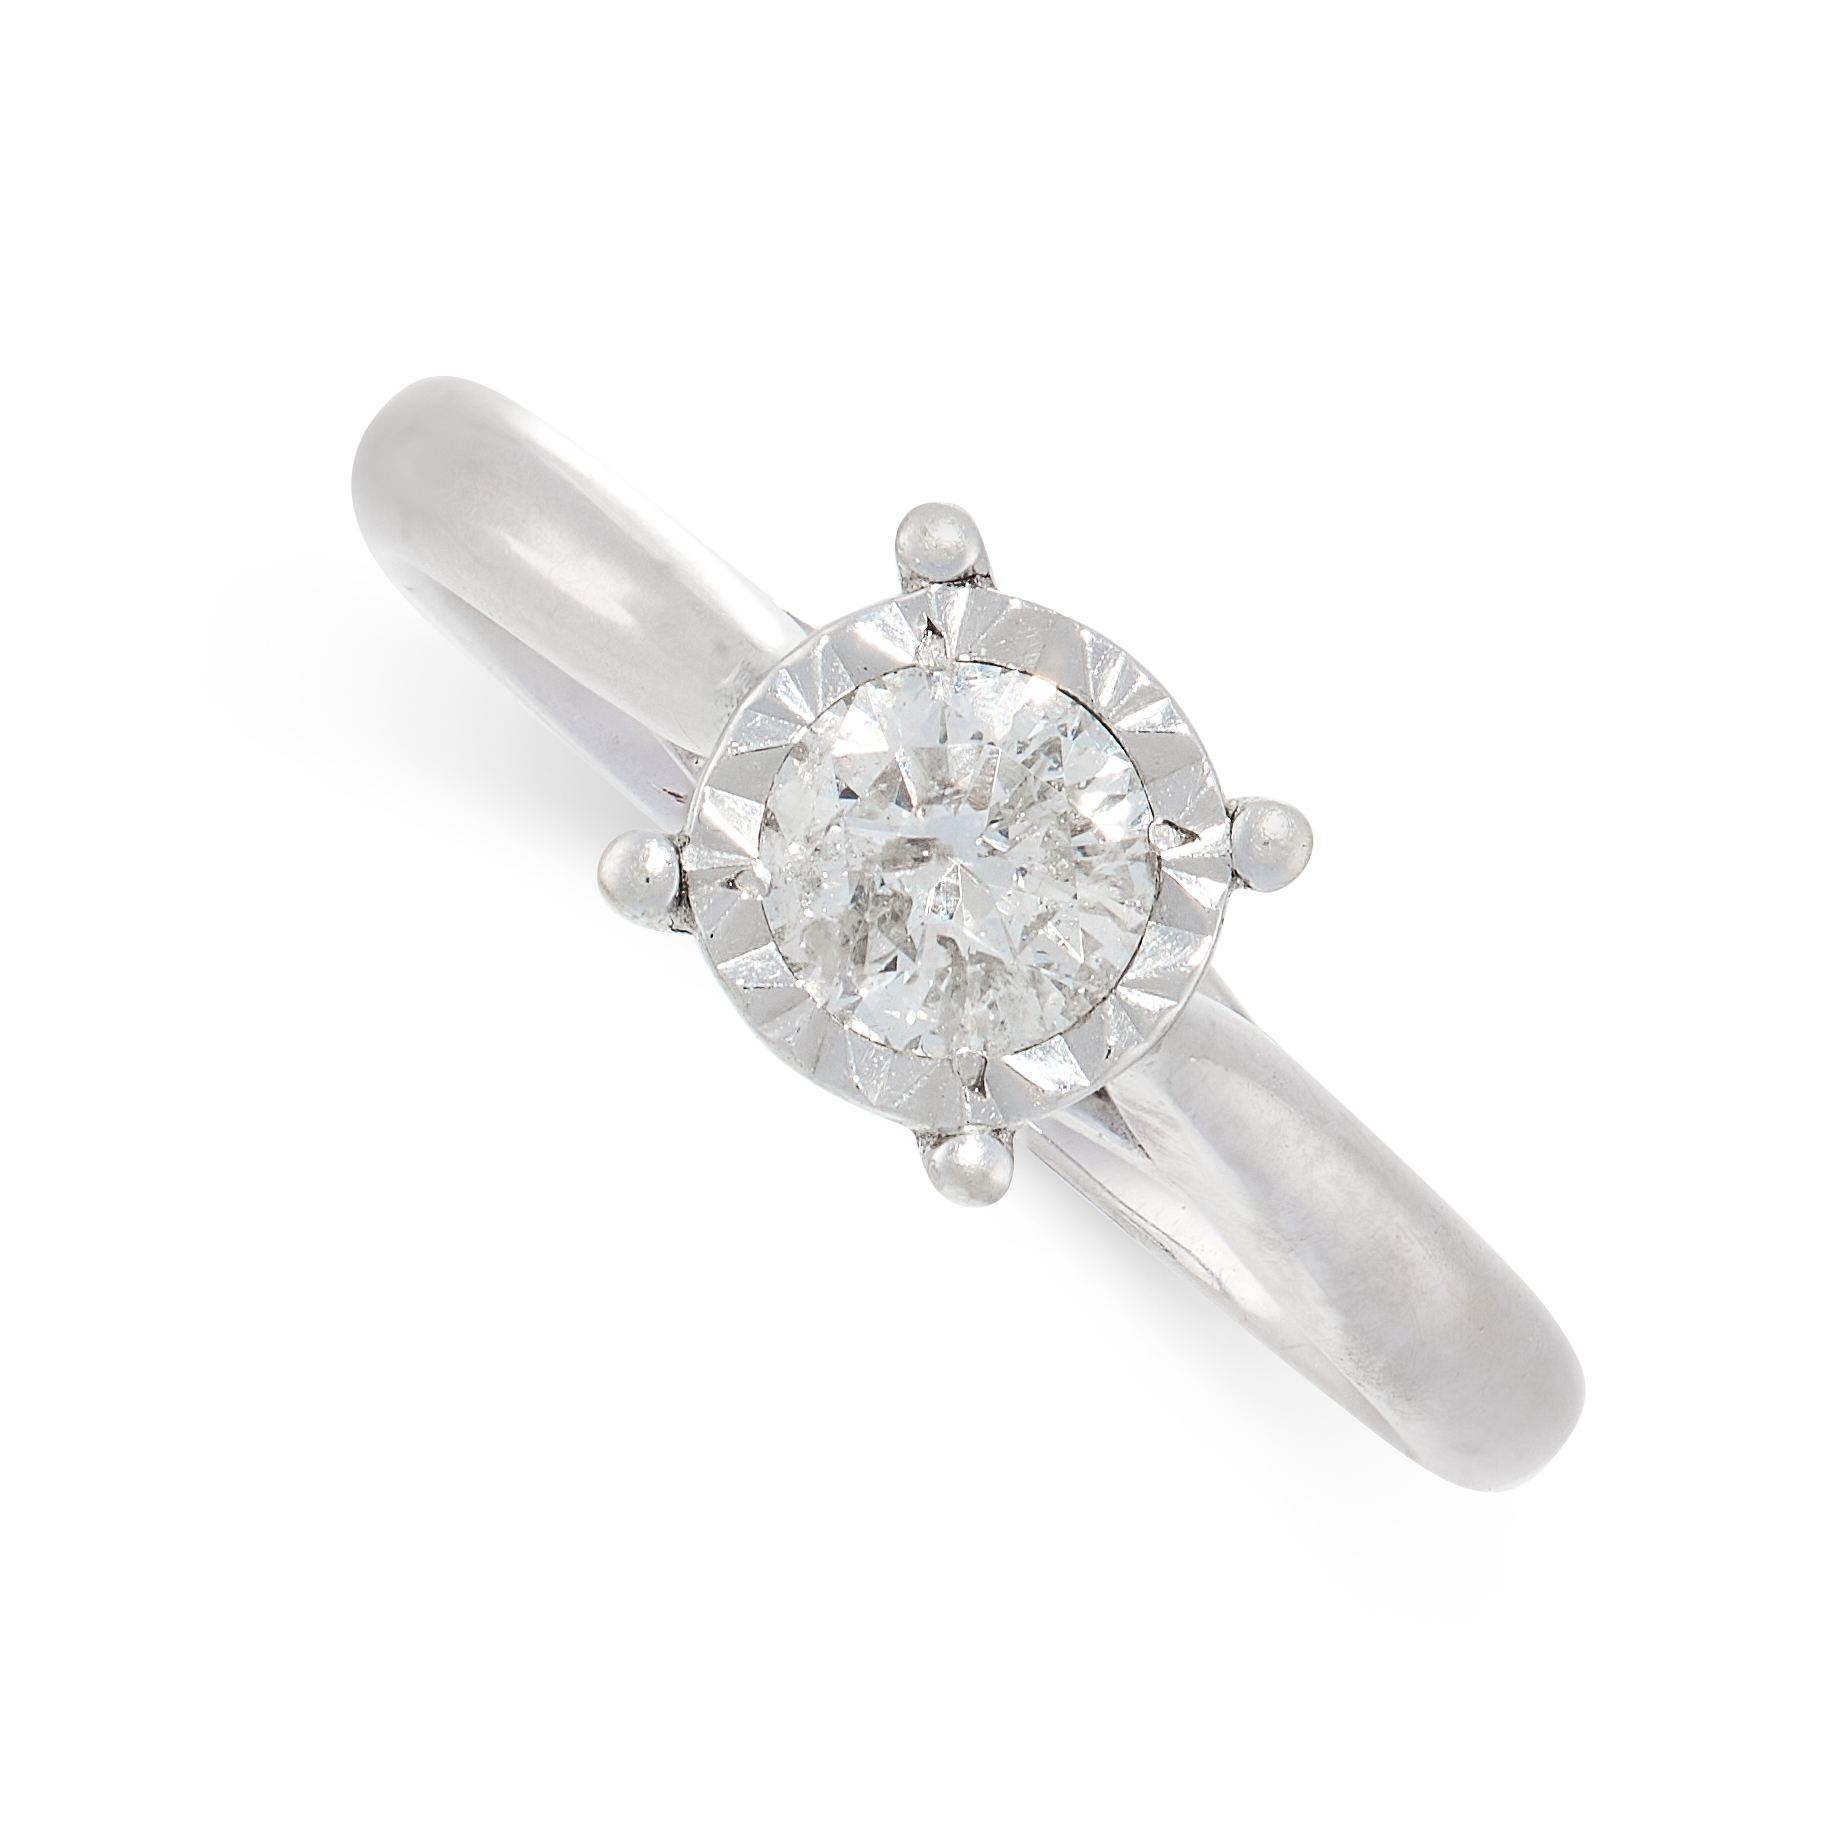 A DIAMOND SOLITAIRE in 9ct white gold, set with a round cut diamond of 0.40 carats, British